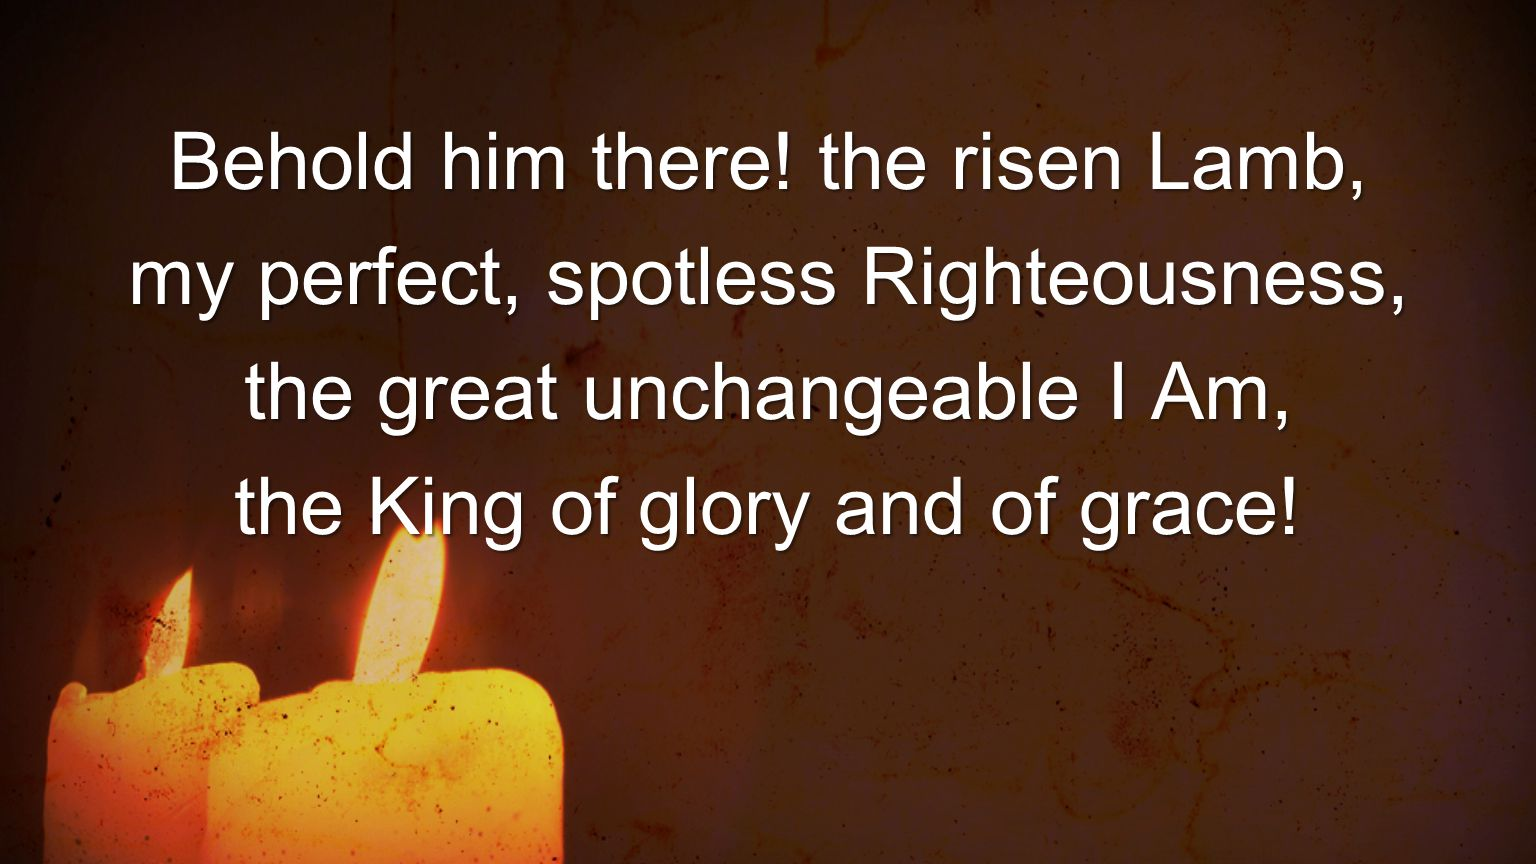 Behold him there! the risen Lamb, my perfect, spotless Righteousness,